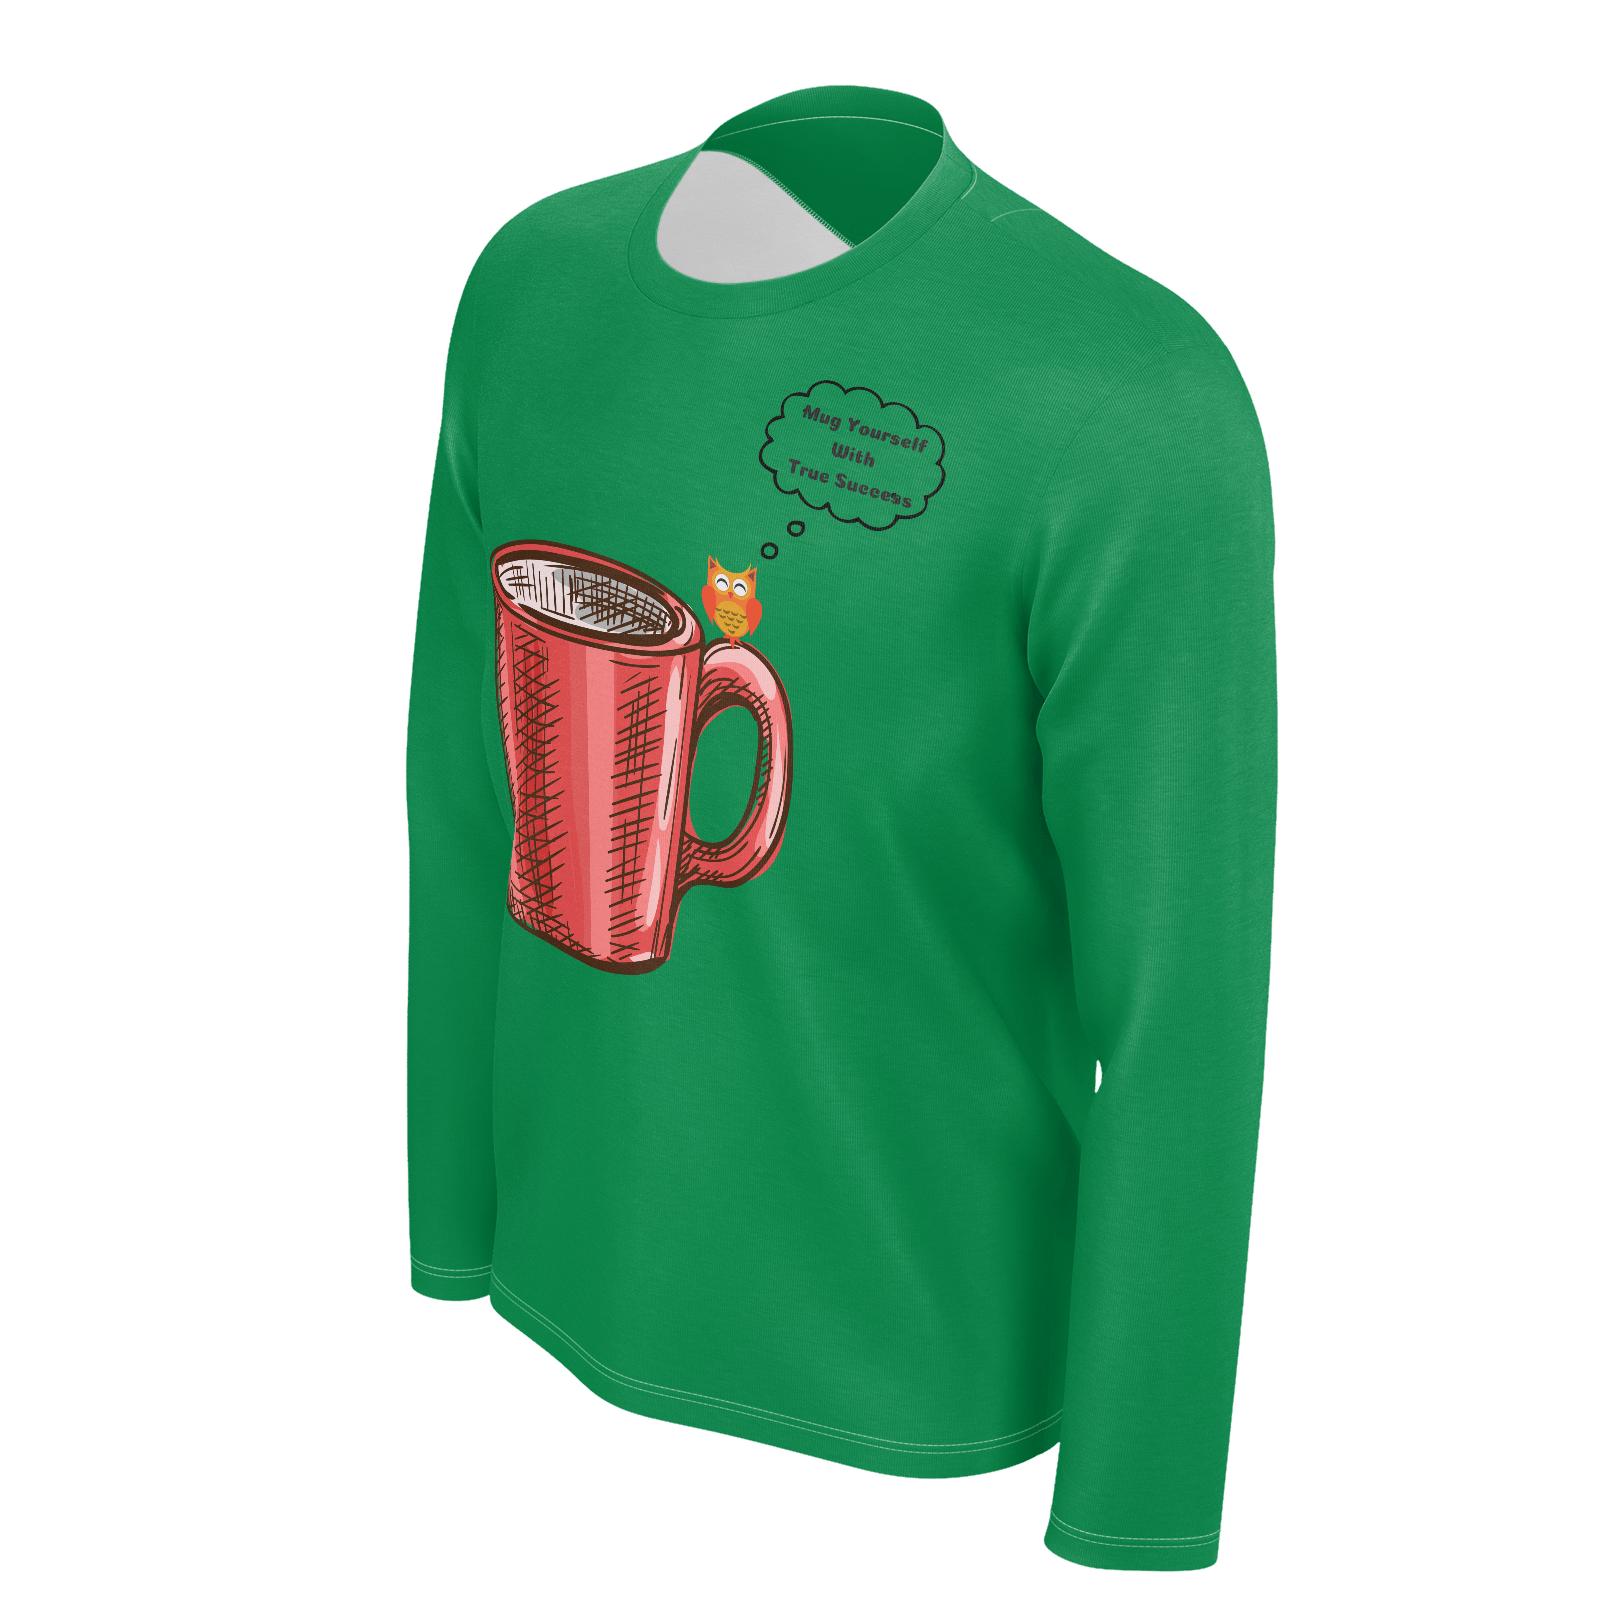 "MW Design ""Mug Yourself With True Success"" Men's Success Green 100% Pima Cotton"